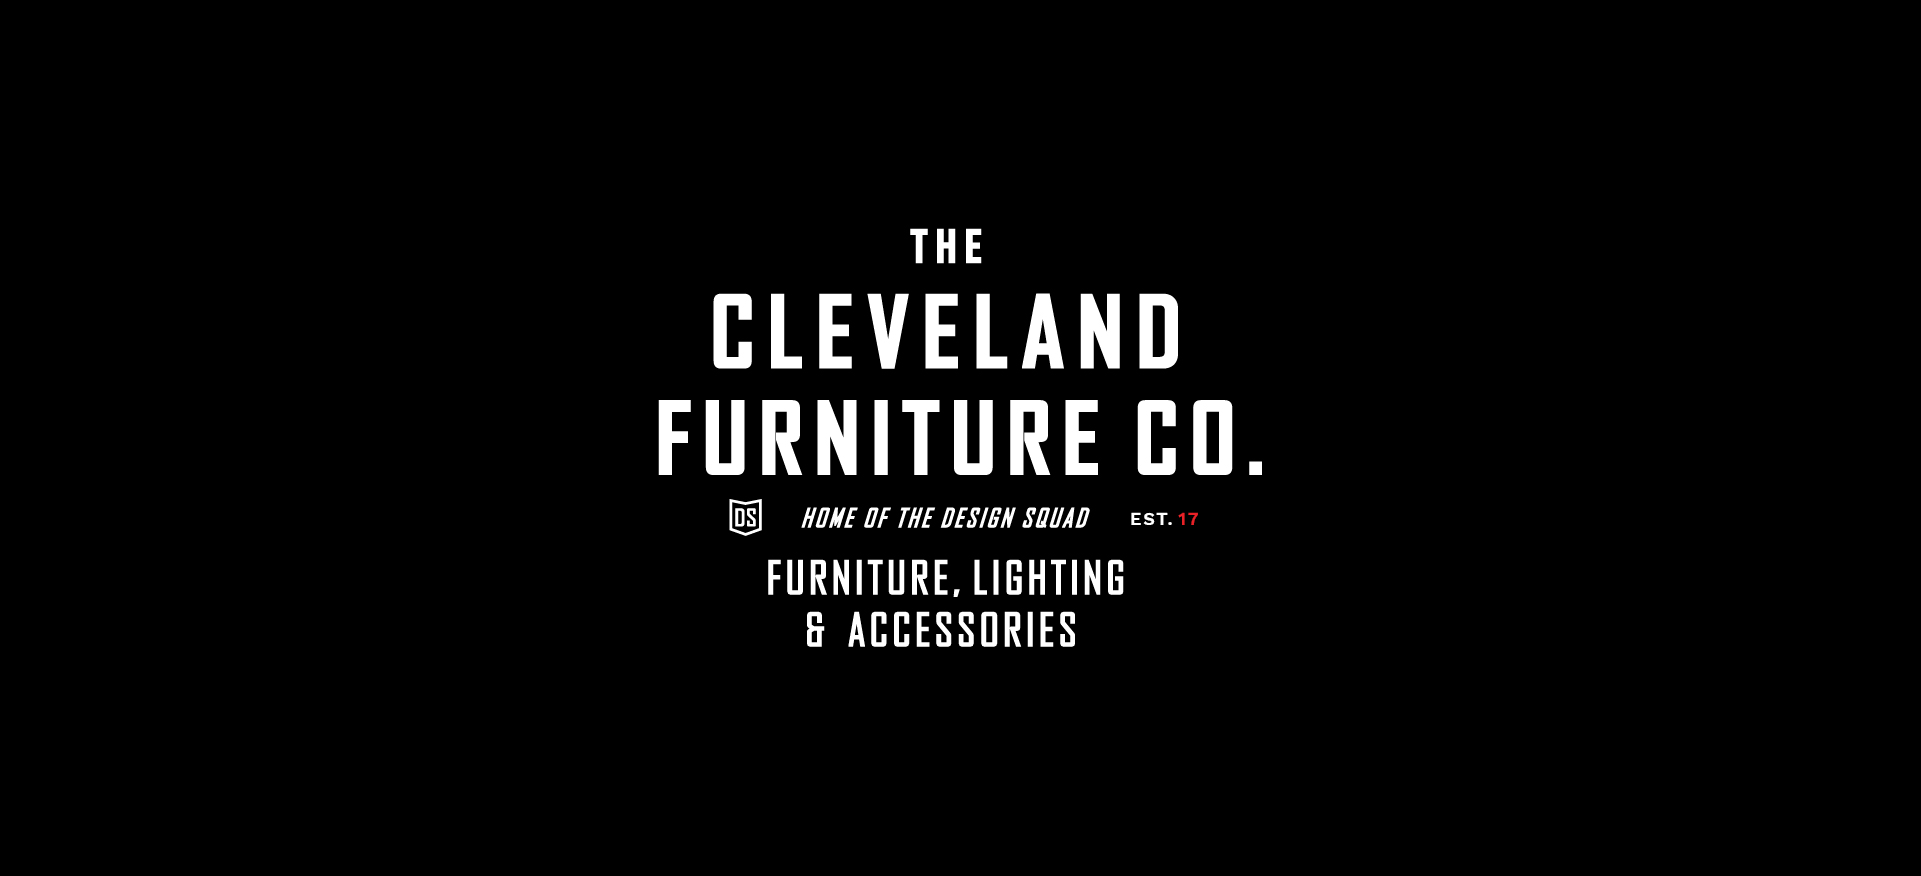 Cleveland Furniture Company Go Media Creativity At Work